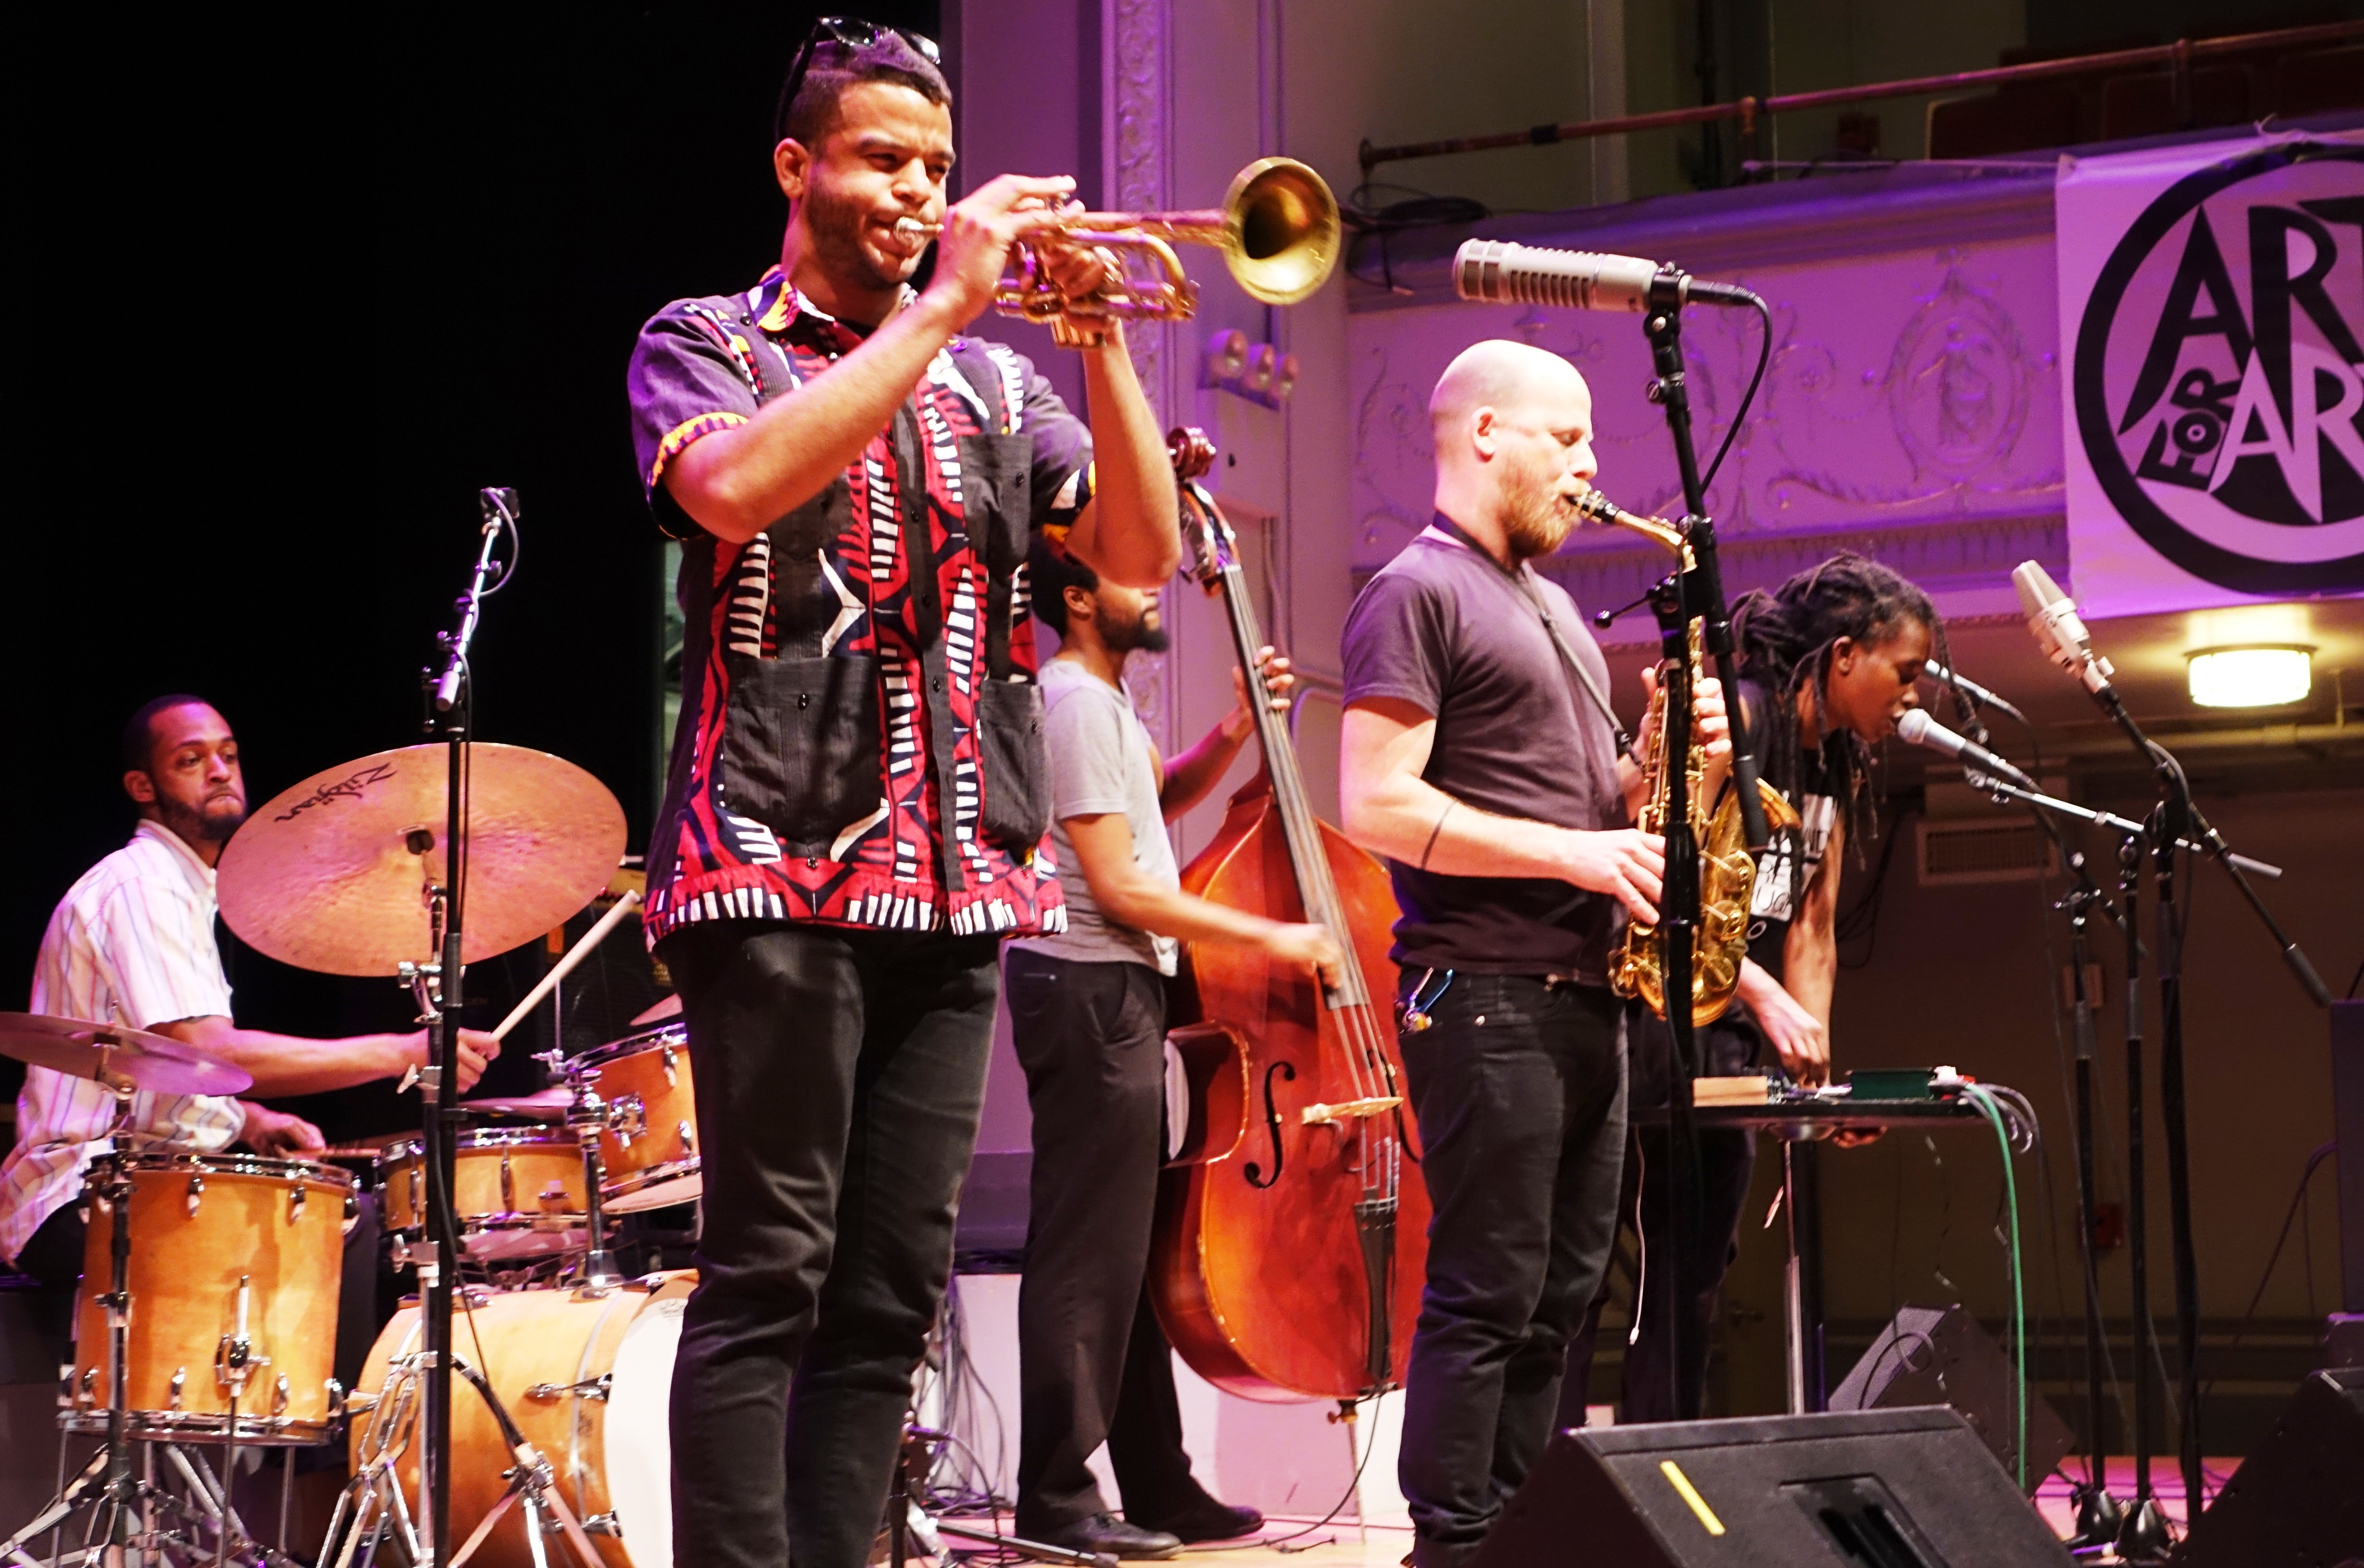 Irreversible Entanglements at the Vision Festival at Roulette, Brooklyn in May 2018